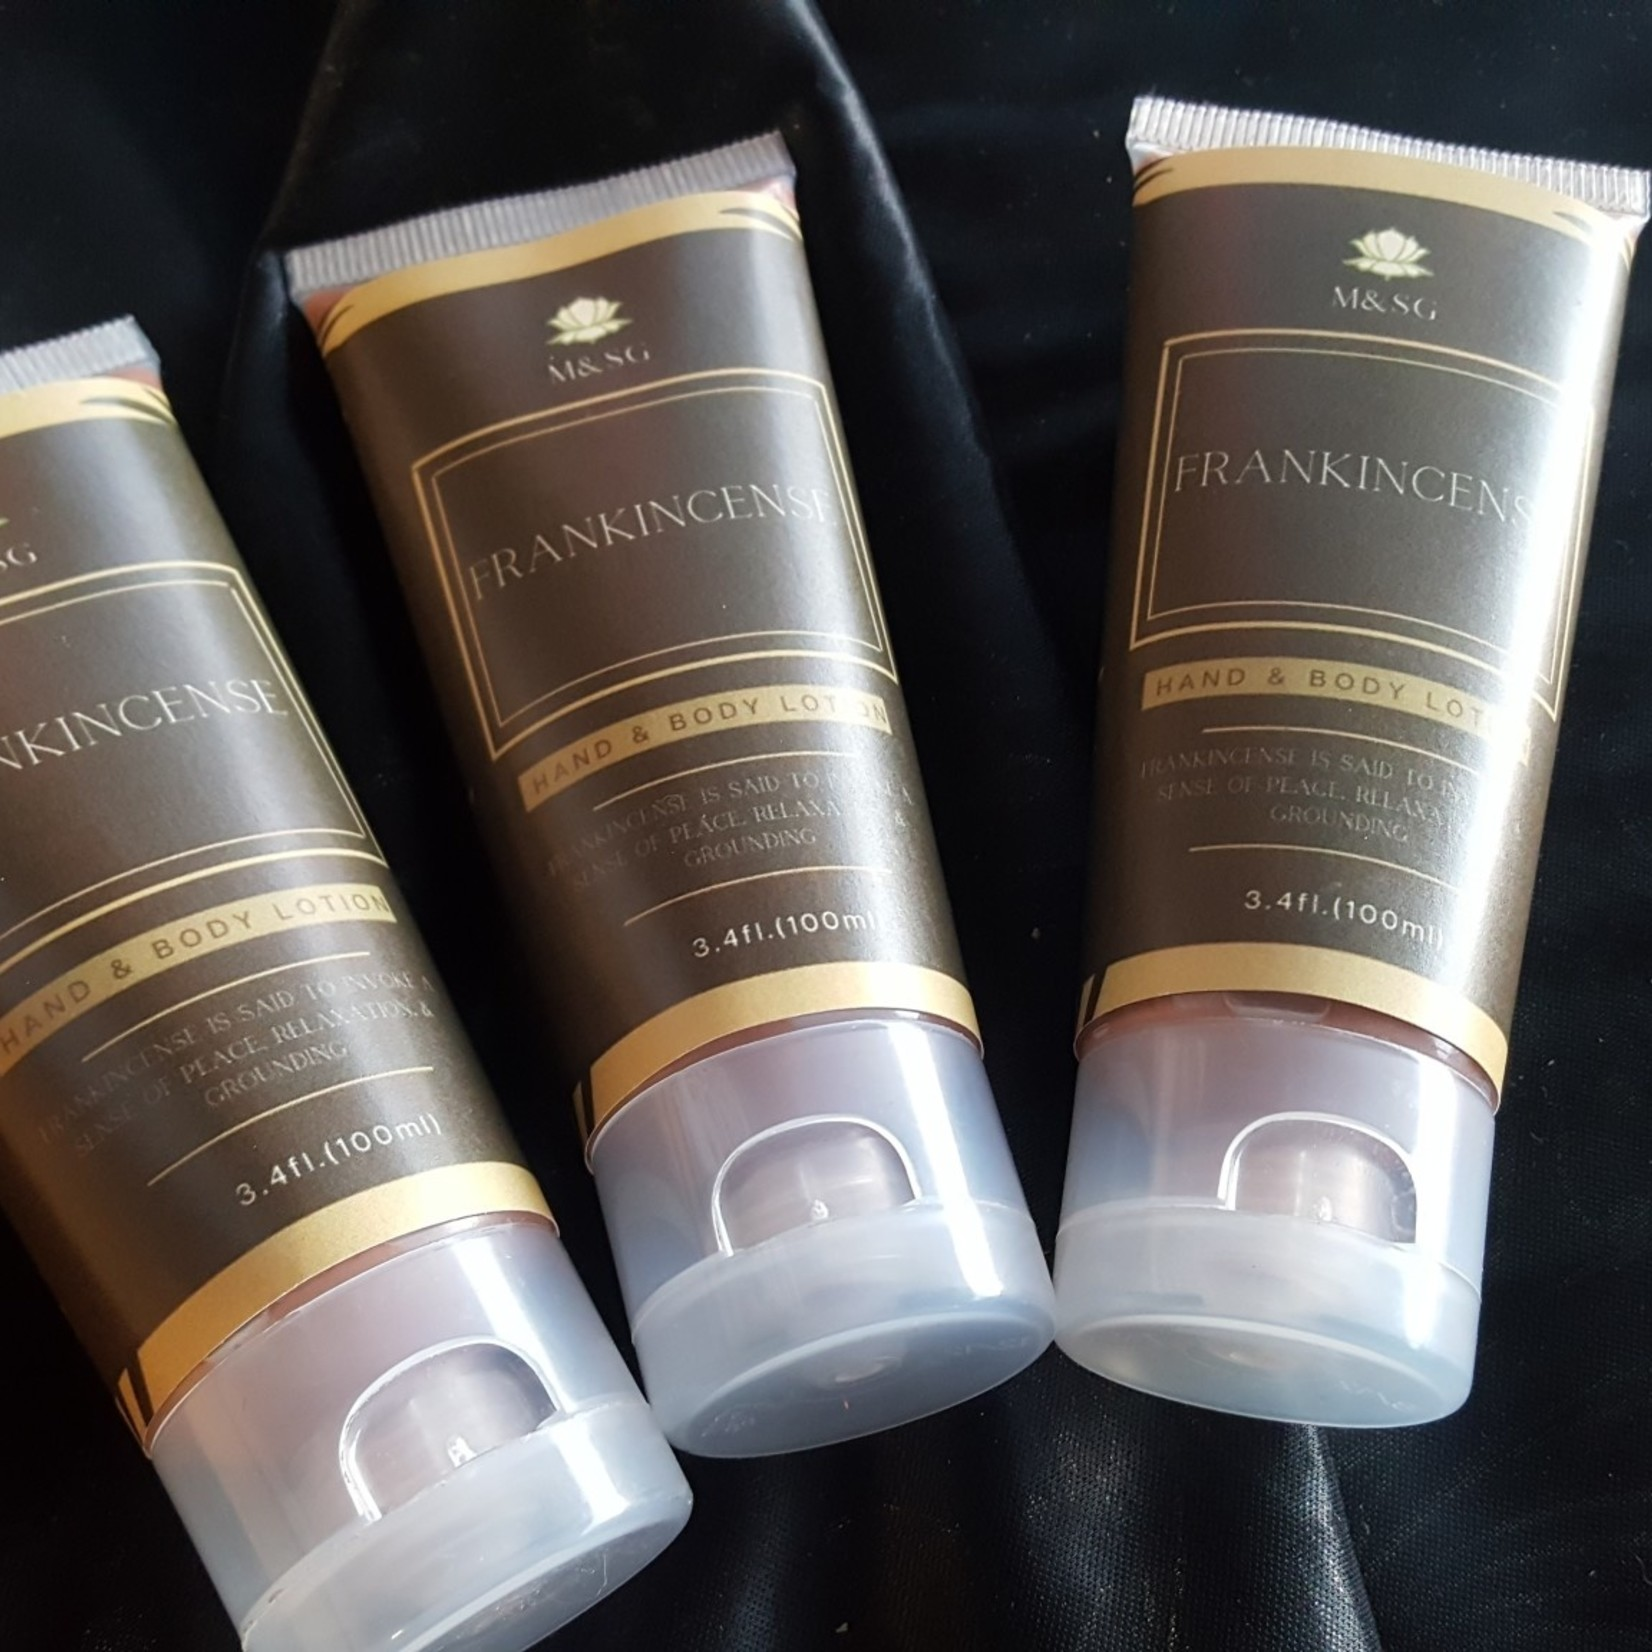 Frankincense Hand & Body Lotion (MSG)